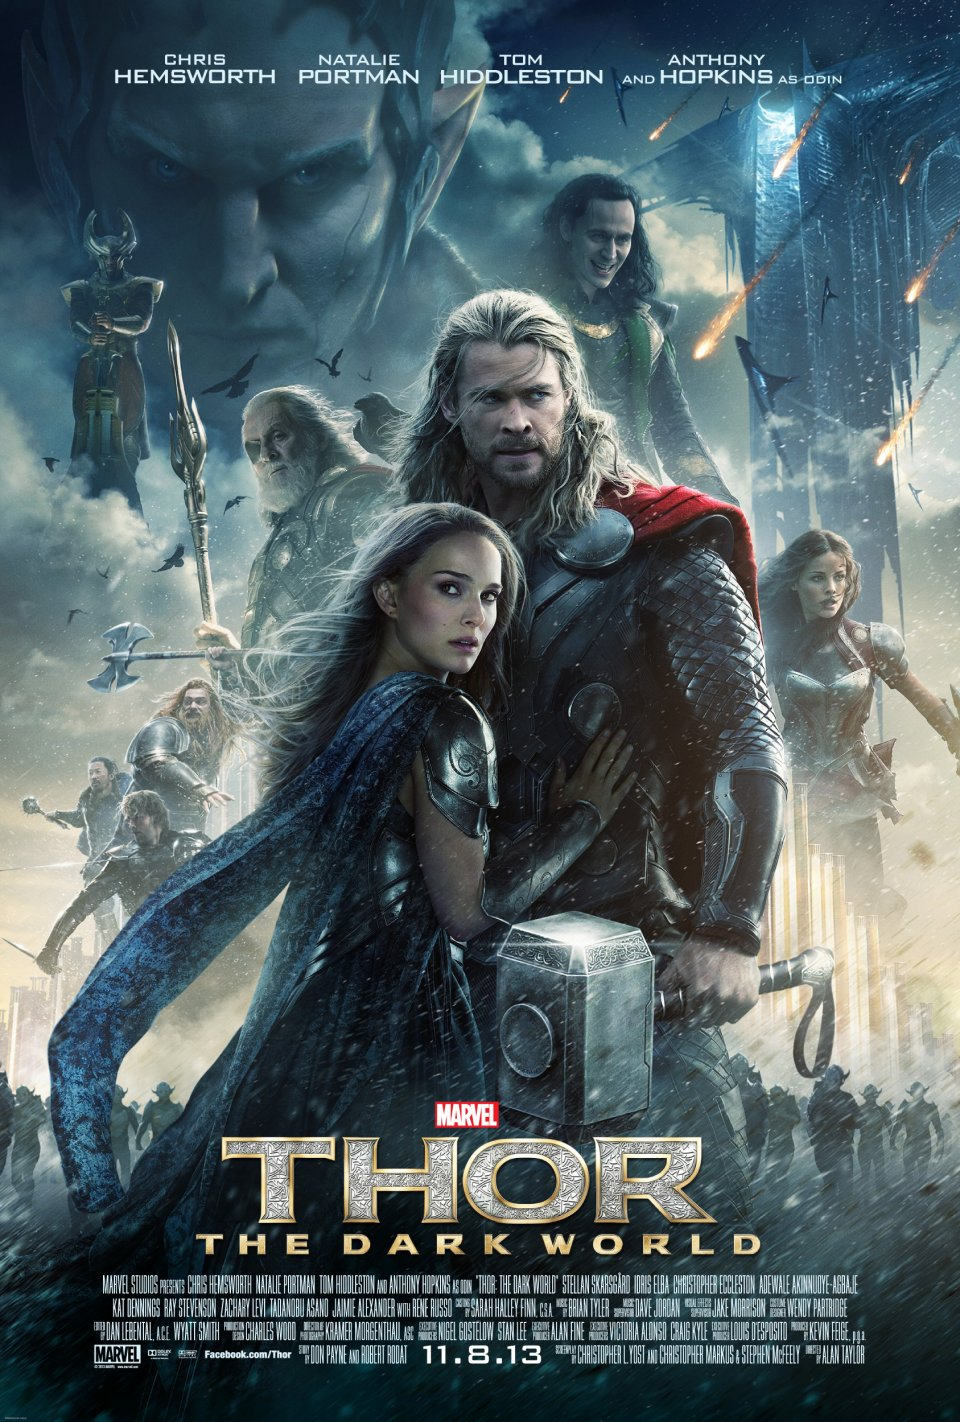 Thor: The Dark World Has Strong Characterization, Lacks Adventure